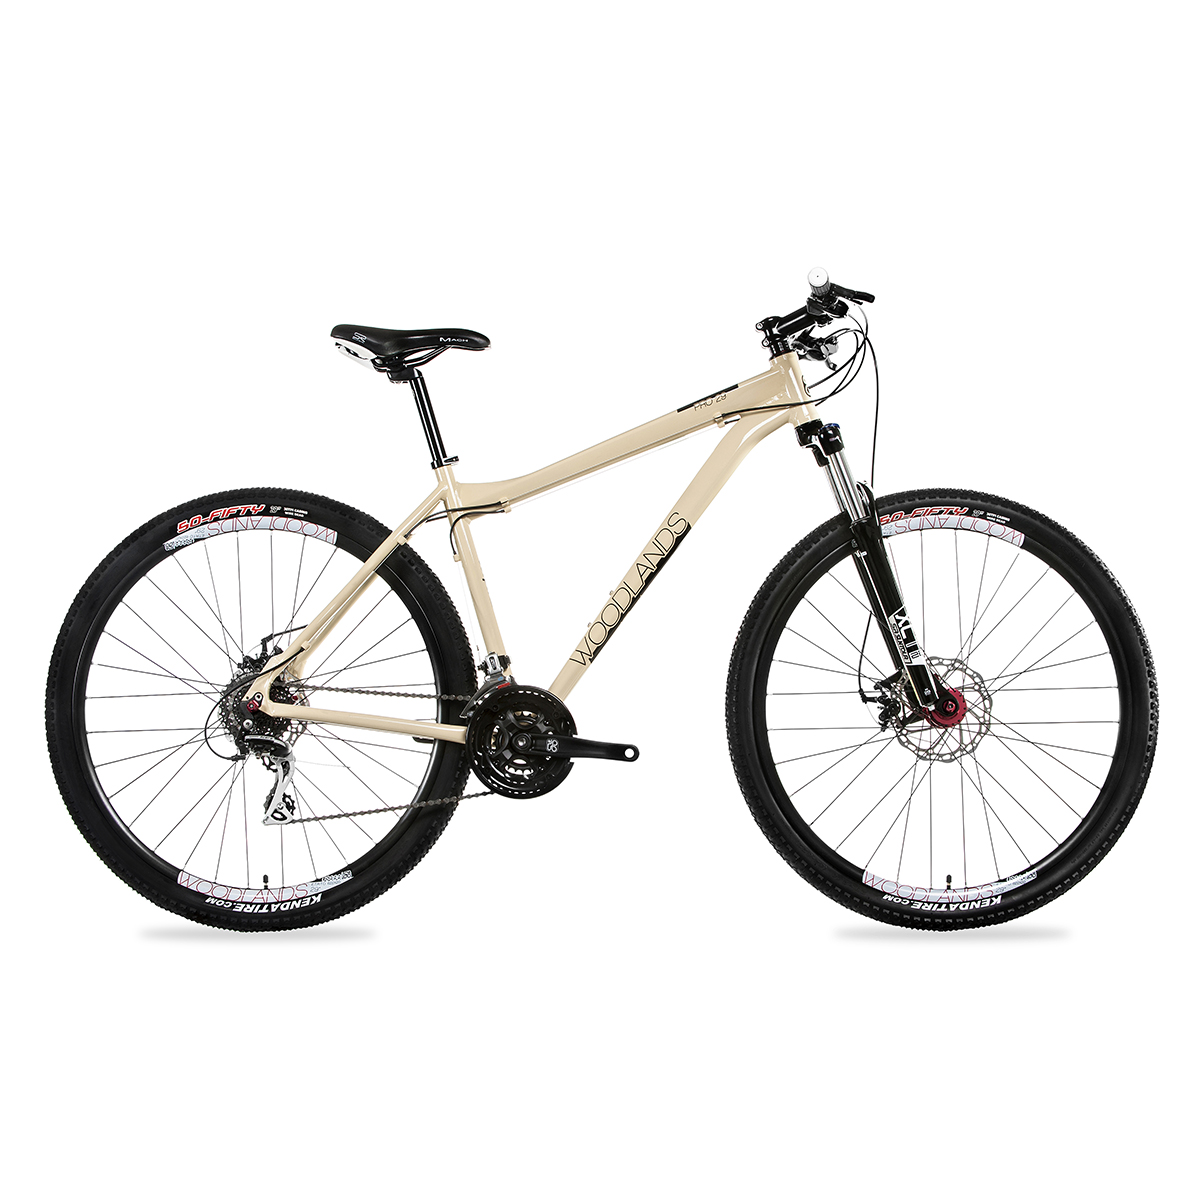 KRP WOODLANDS PRO 29 MTB 2.0 24S SMALL BARNA